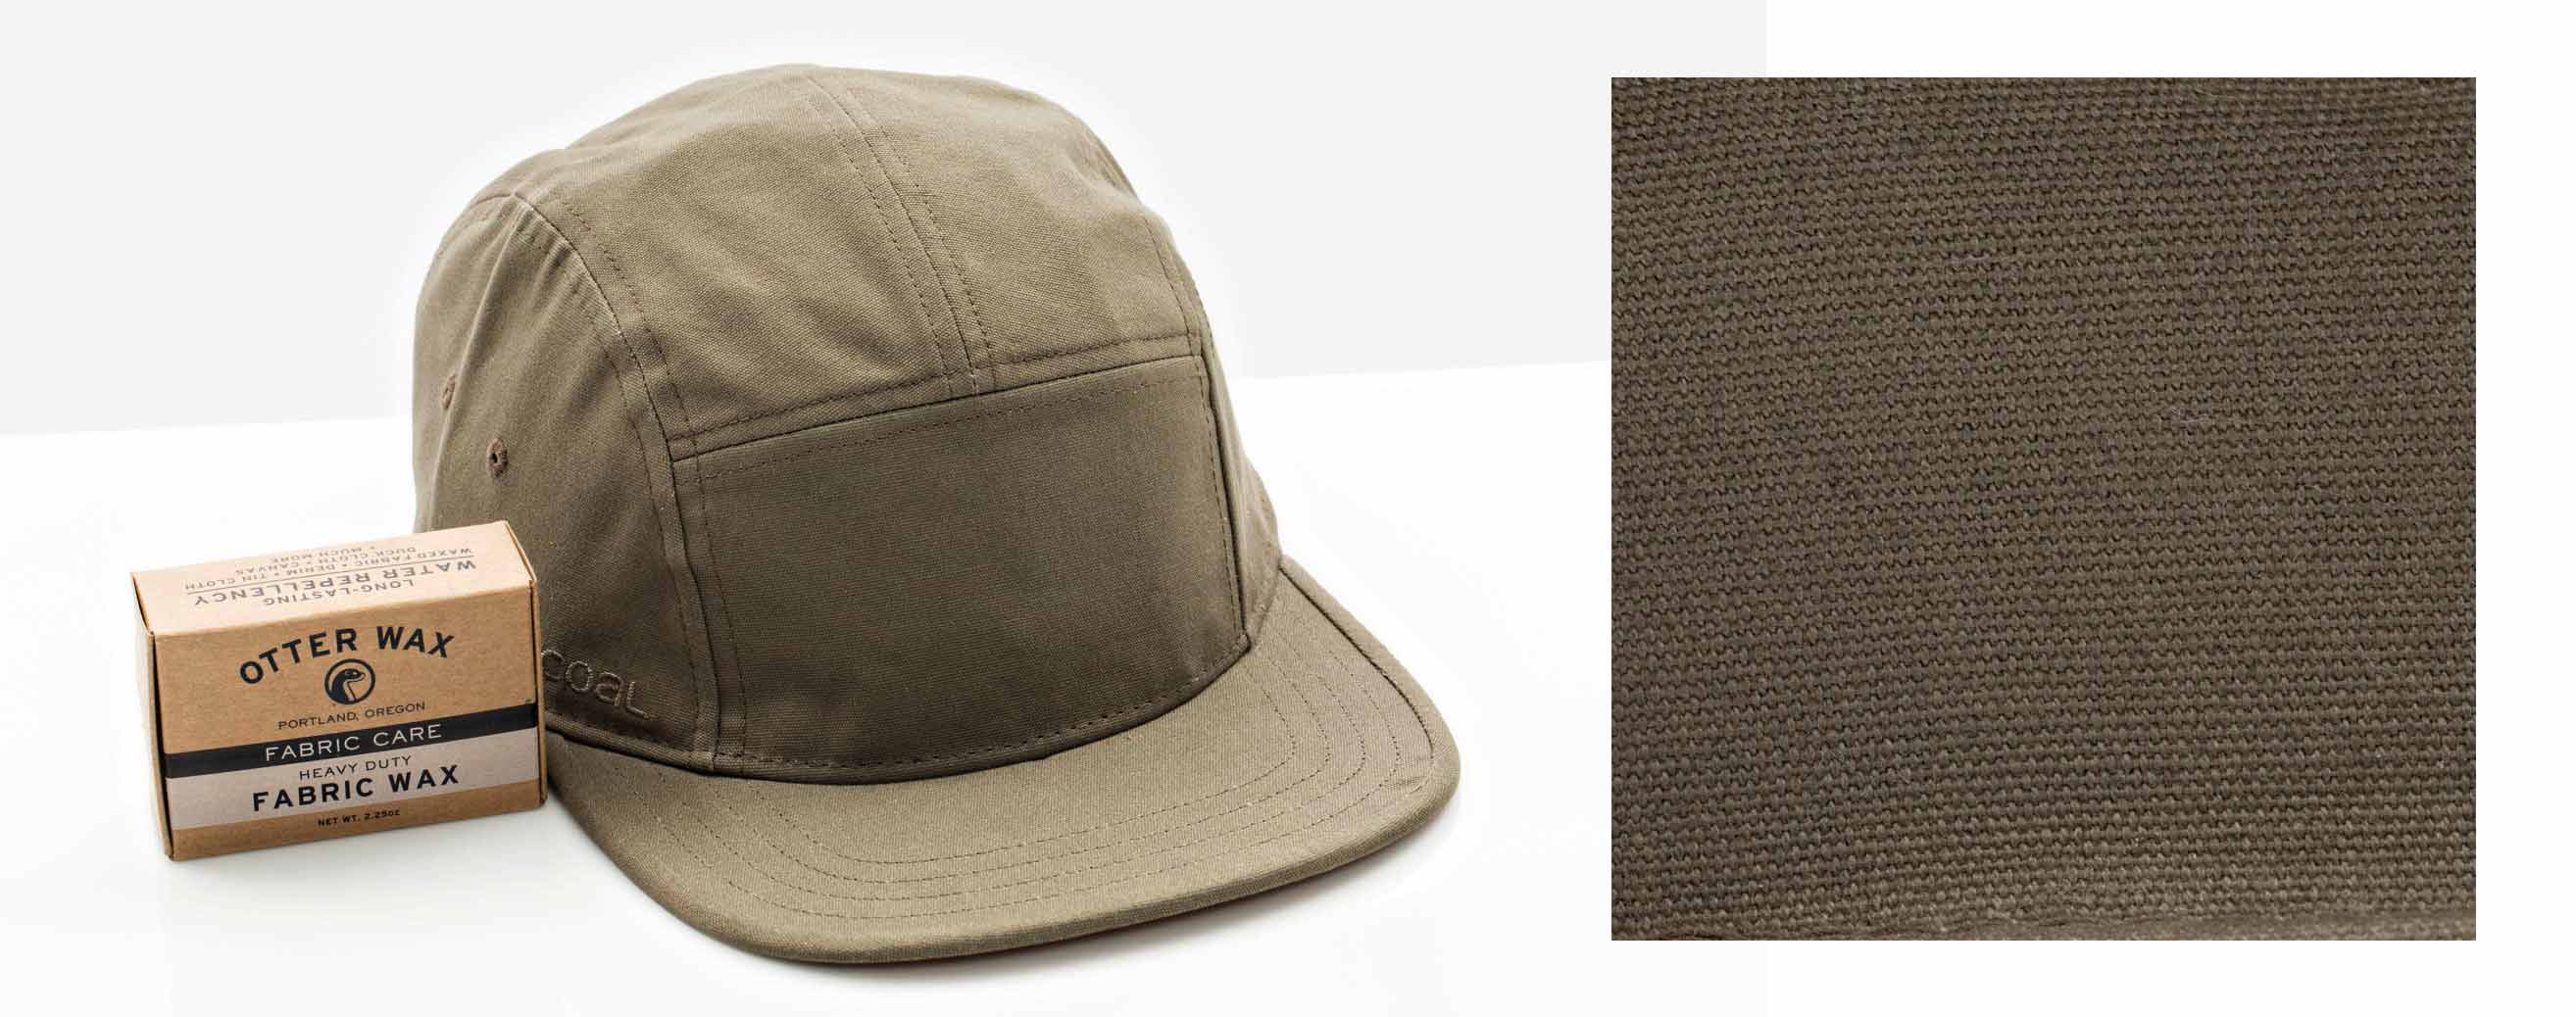 How To Wax A Hat With Otter Wax